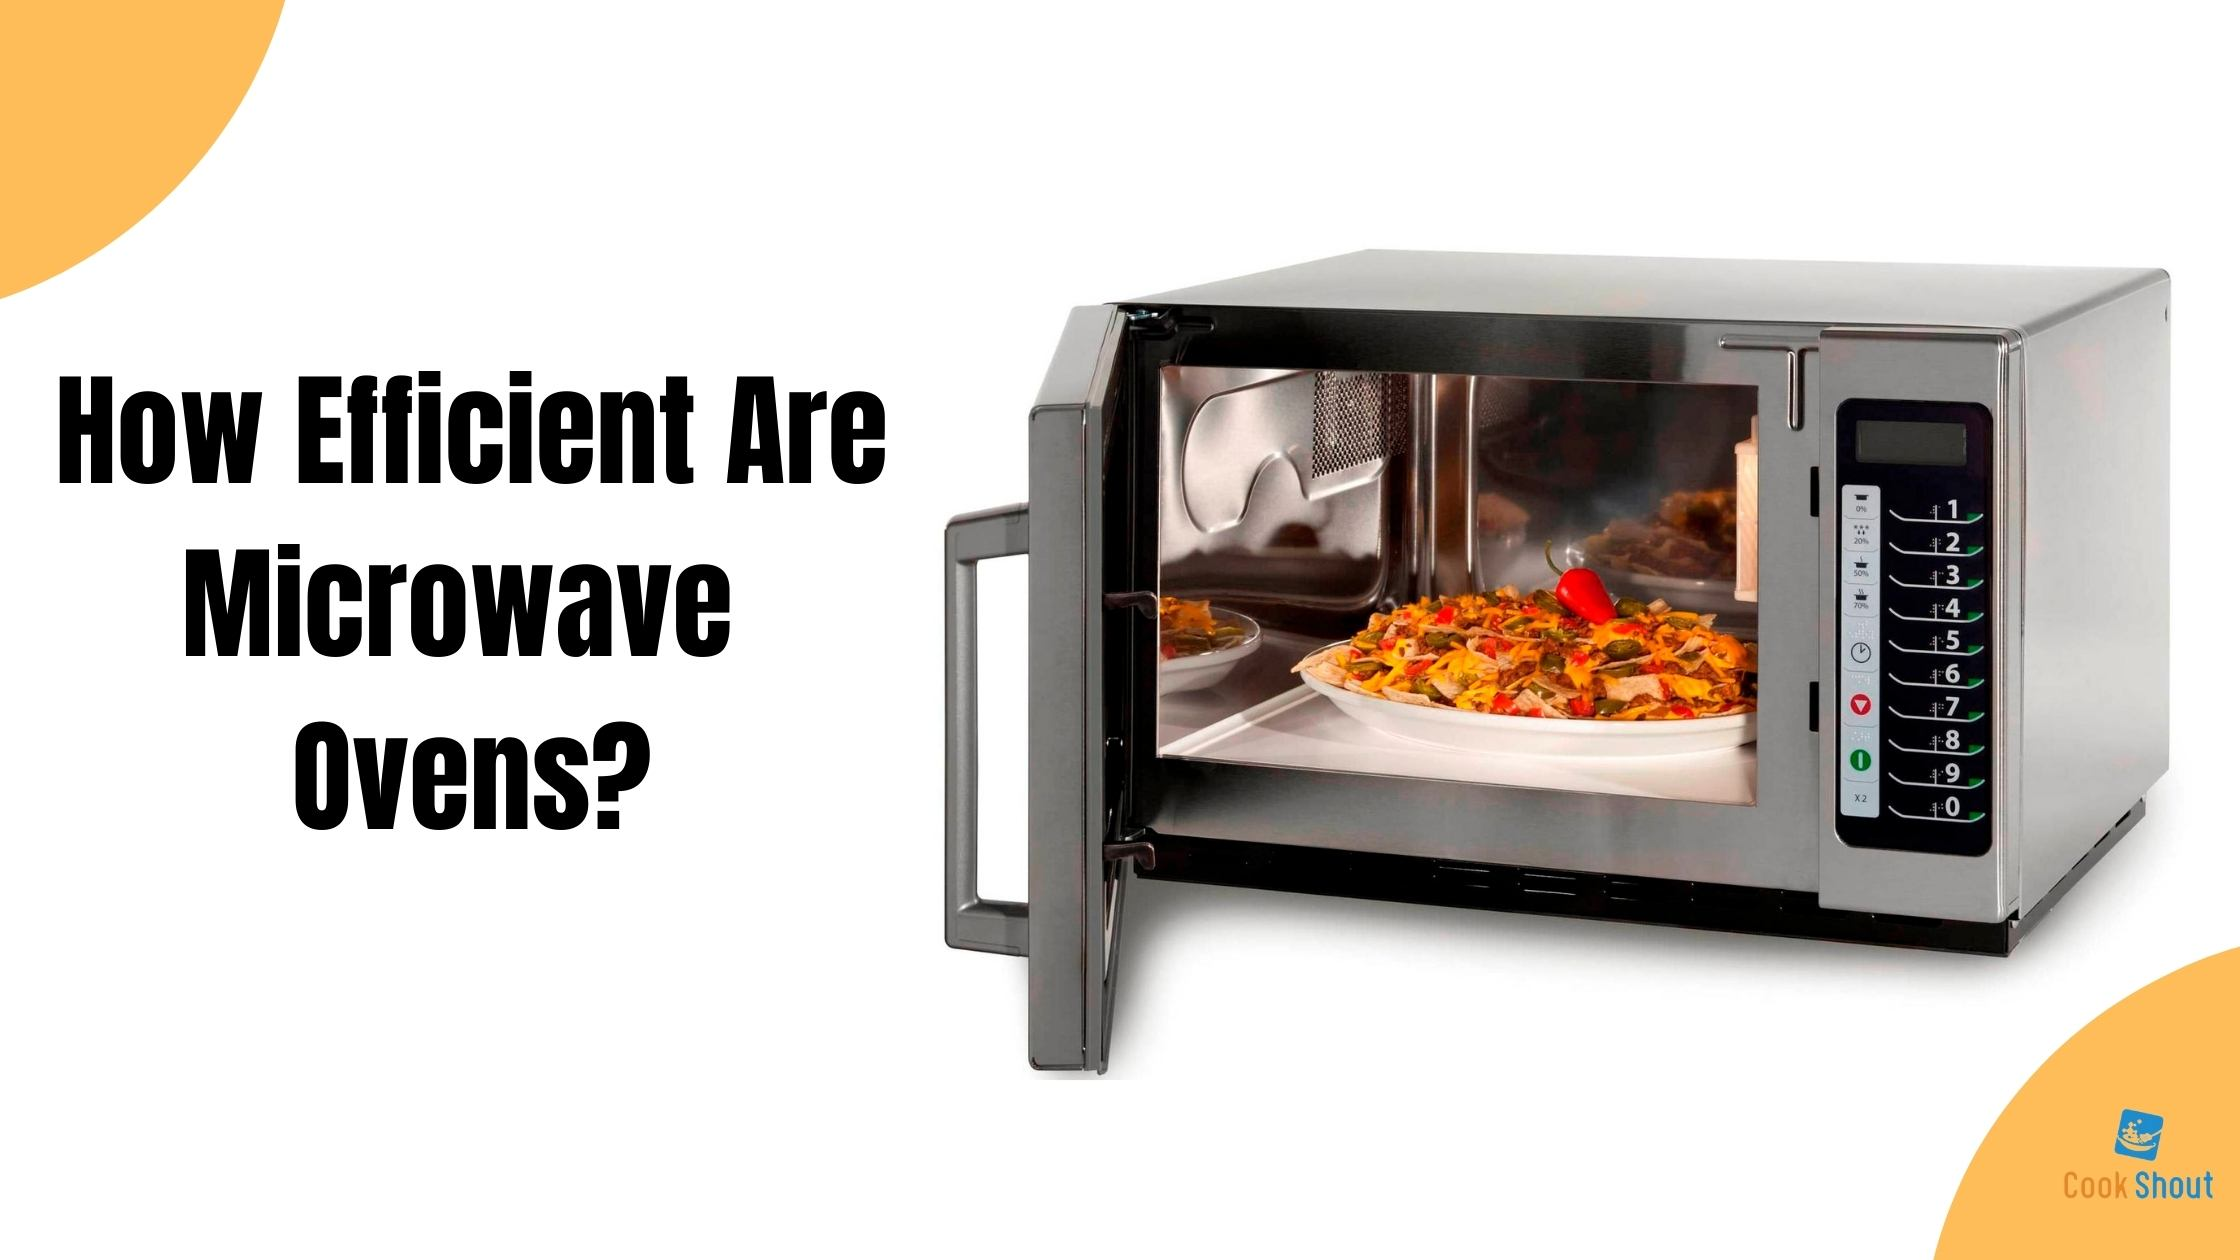 How Efficient Are Microwave Ovens?